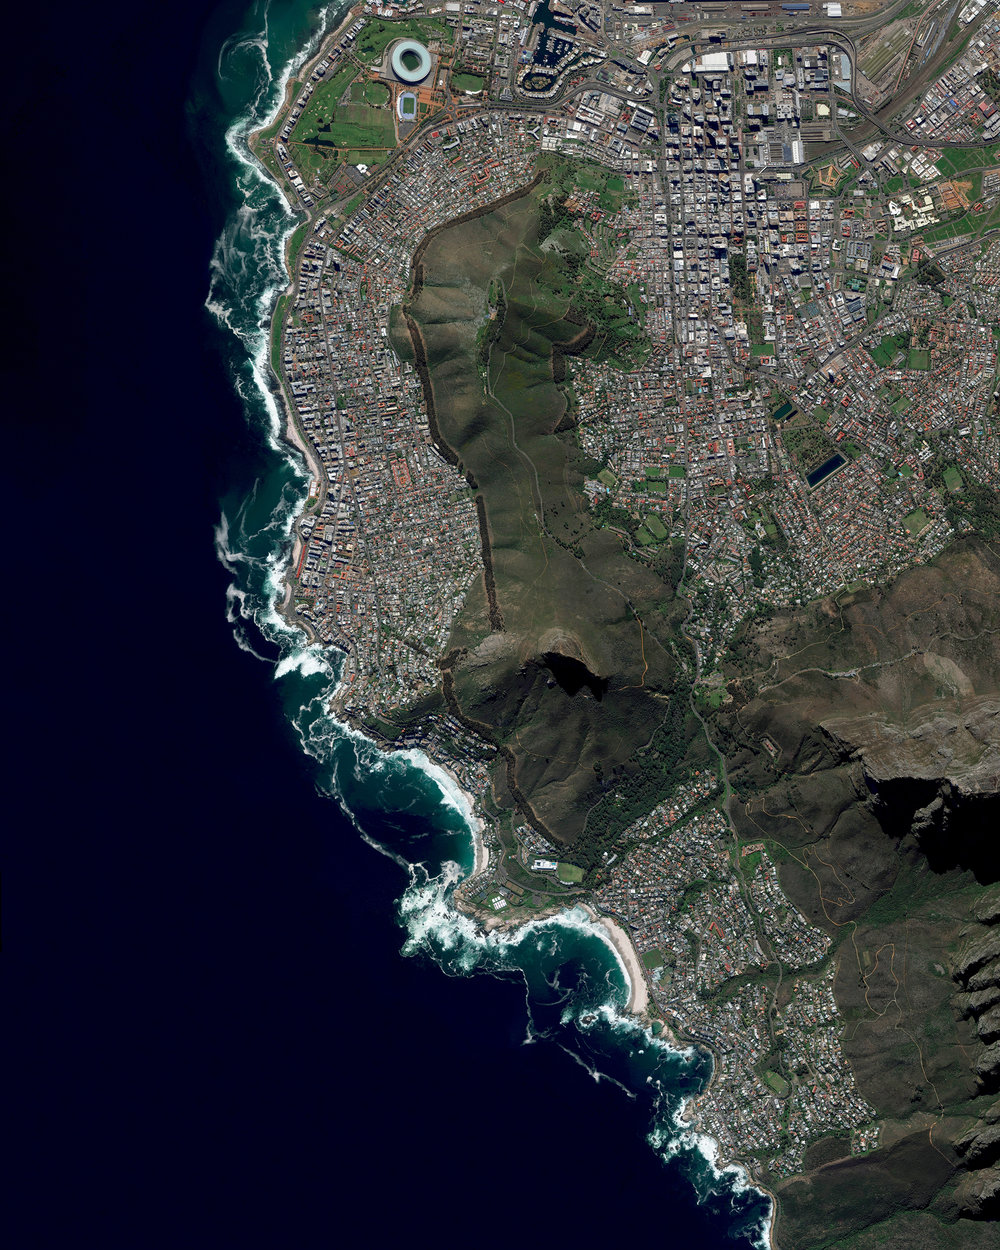 """Cape Town is a port city on South Africa's southwest coast. The city's geography is influenced by the surrounding Table Mountain, the Durbanville Hills, and the expansive lowland region known as the Cape Flats. These geographic features divide the city into several commonly known suburbs, many of which developed simultaneously and share common attributes of language and culture. This unique blend has made Cape Town one of the most multicultural cities in the world, attracting tourists, immigrants, and expats to South Africa.  33°55'31.0""""S, 18°25'26.0""""E  Source imagery: DigitalGlobe"""